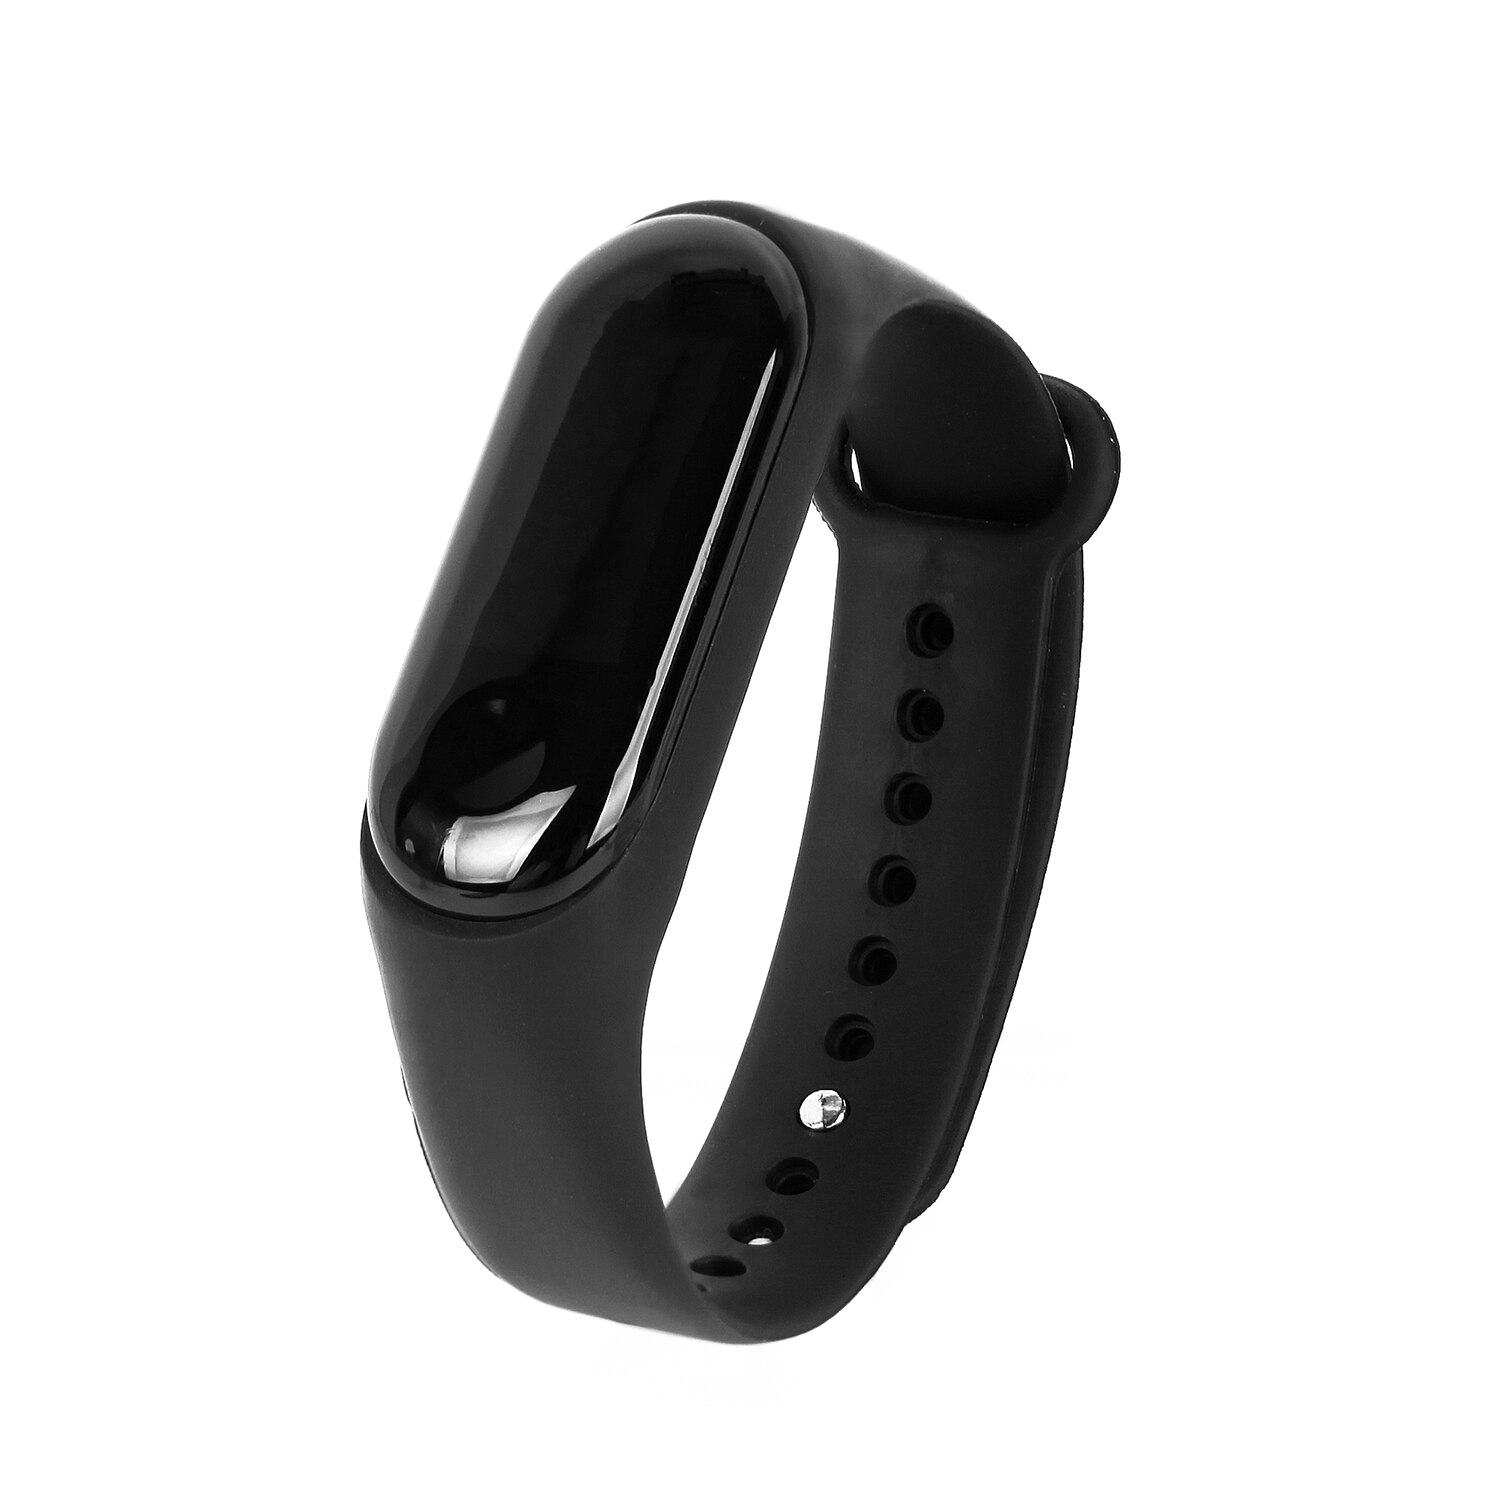 H7e82ad02a2a74b56a175a5f2274fd6adN - M4 Men's Watch Women's Clock Heart Rate Blood Pressure Monitoring Tracker Fitness Wristband Bluetooth Connection Waterproof